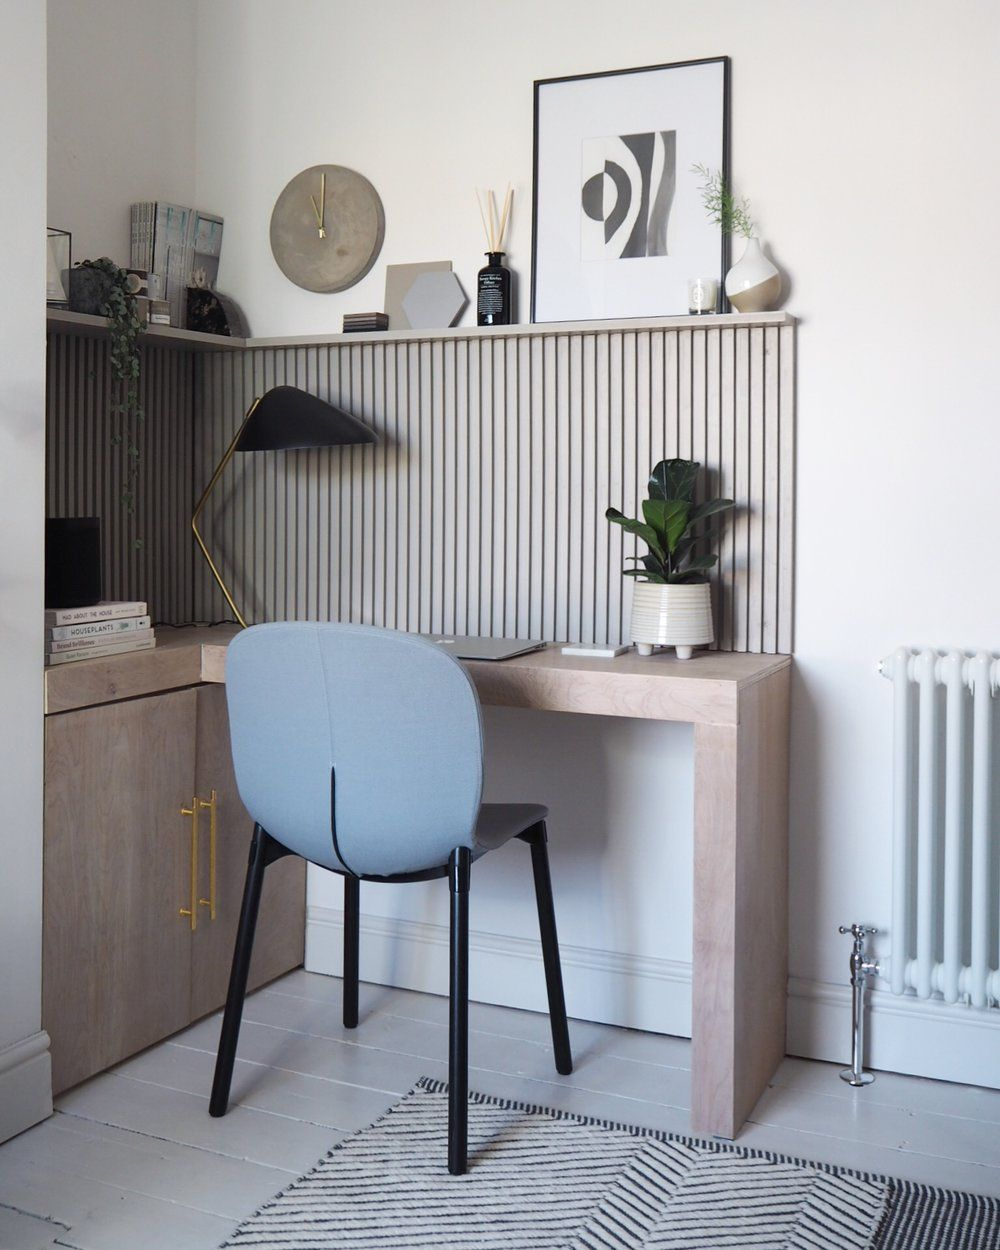 SPARE ROOM OFFICE MAKEOVER REVEAL